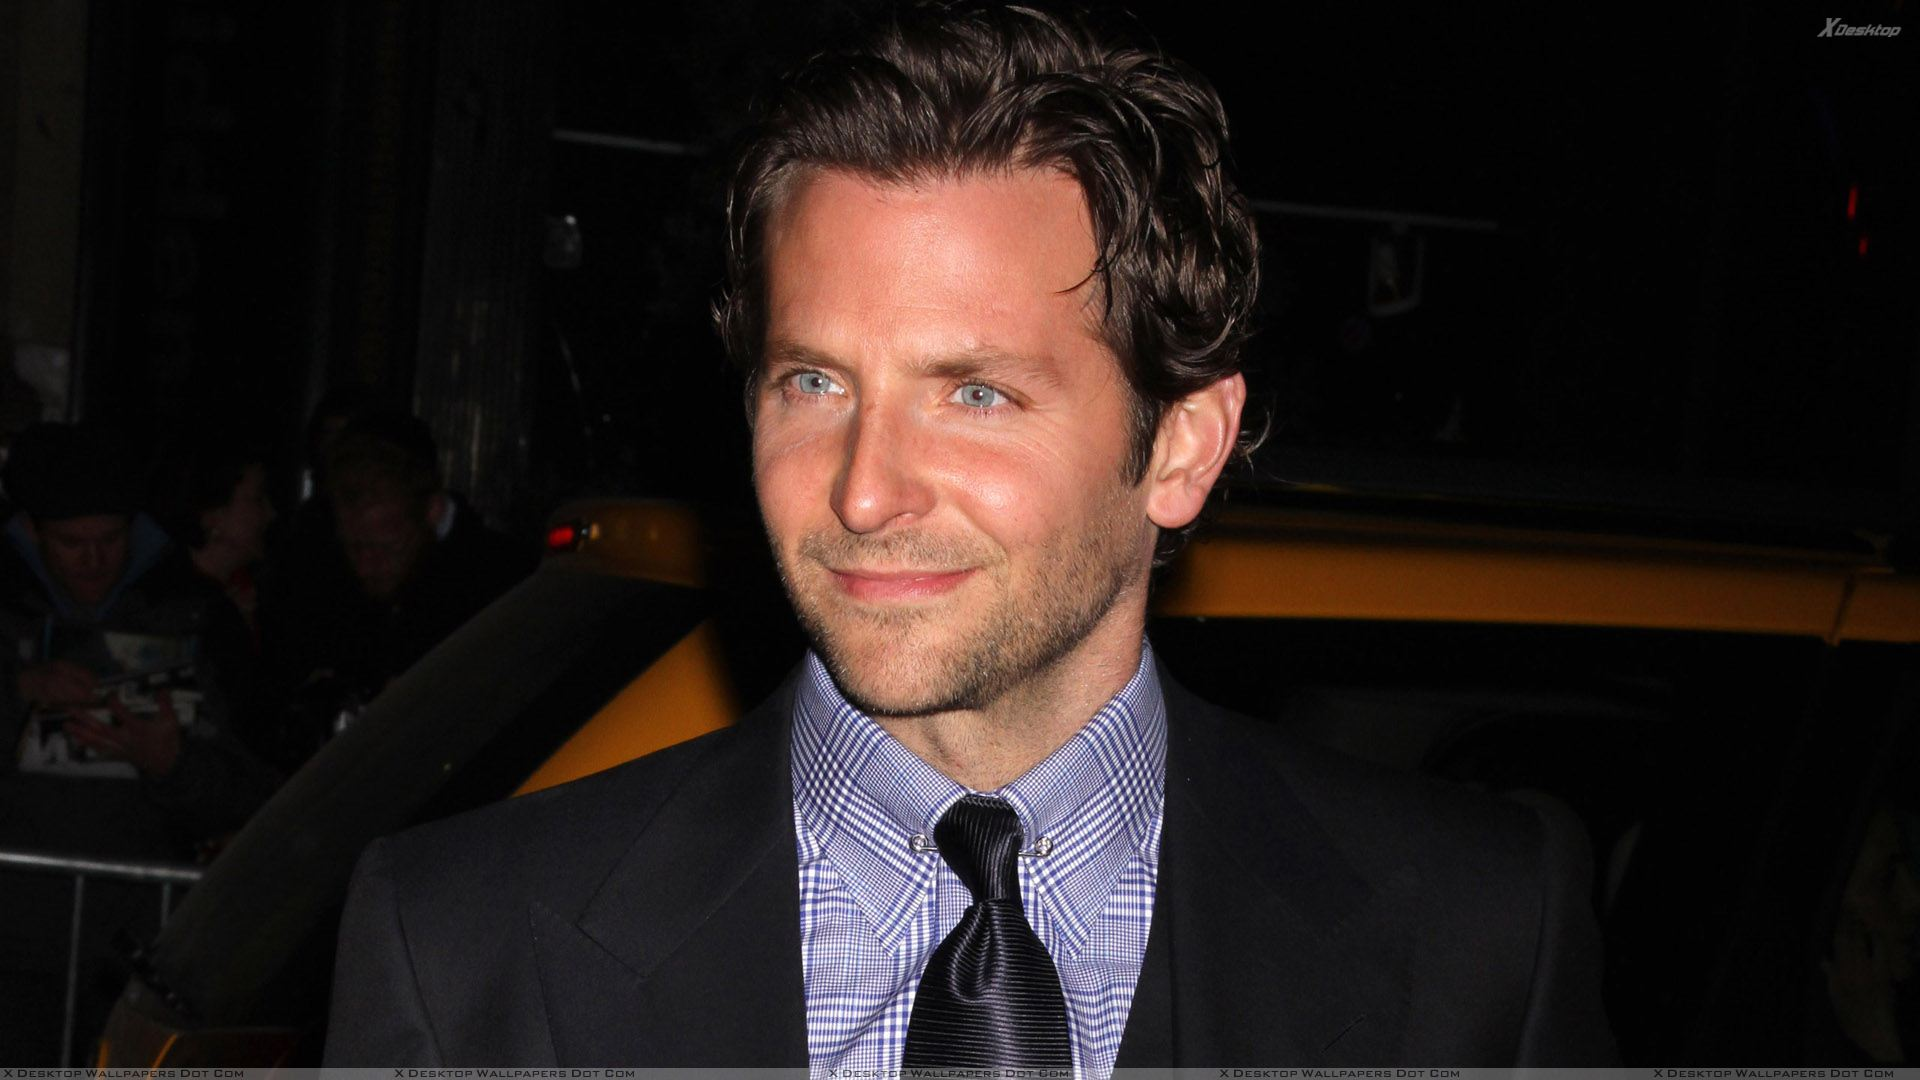 bradley cooper wallpapers high resolution and quality download